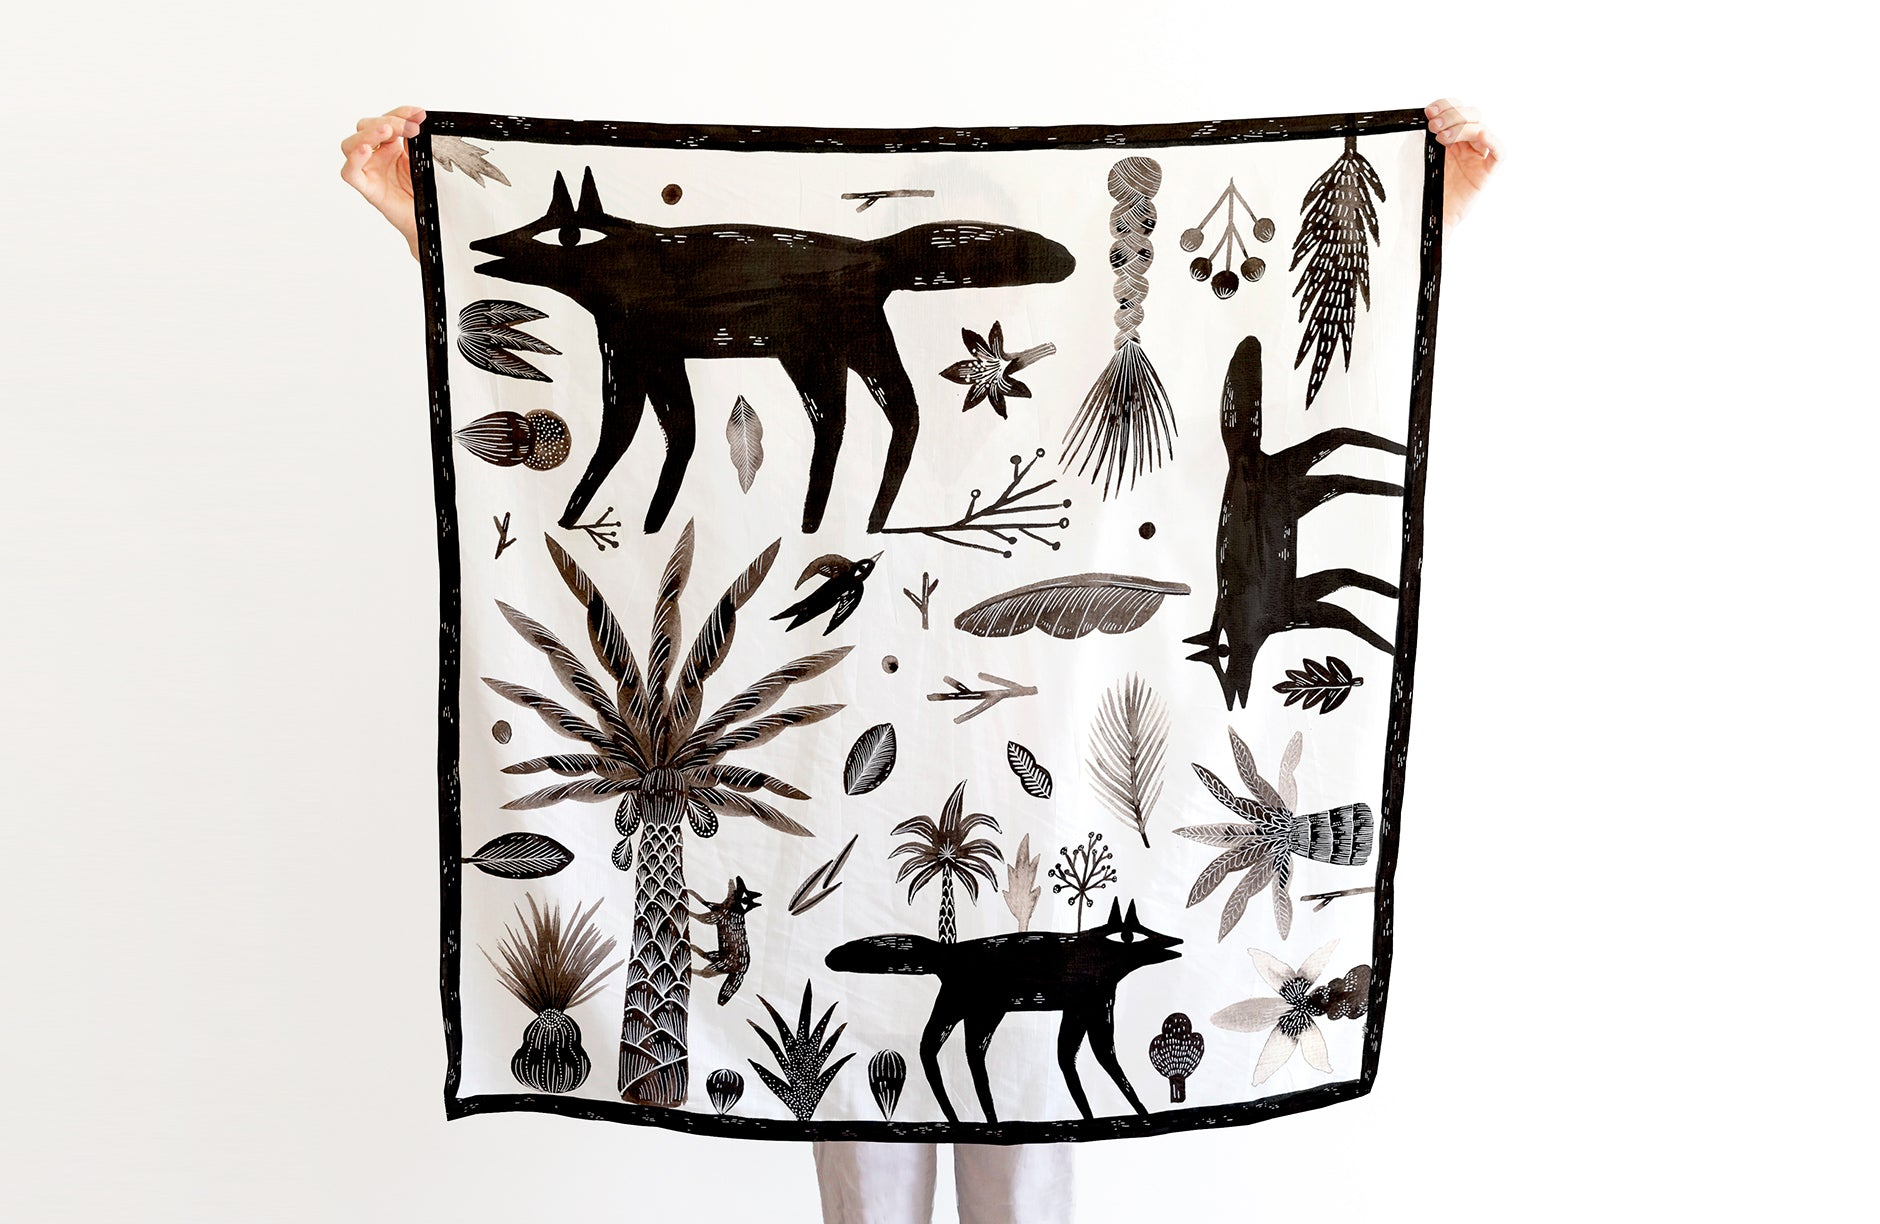 Wolves Scarf - 88x88 cm, Silk-Cotton Blends